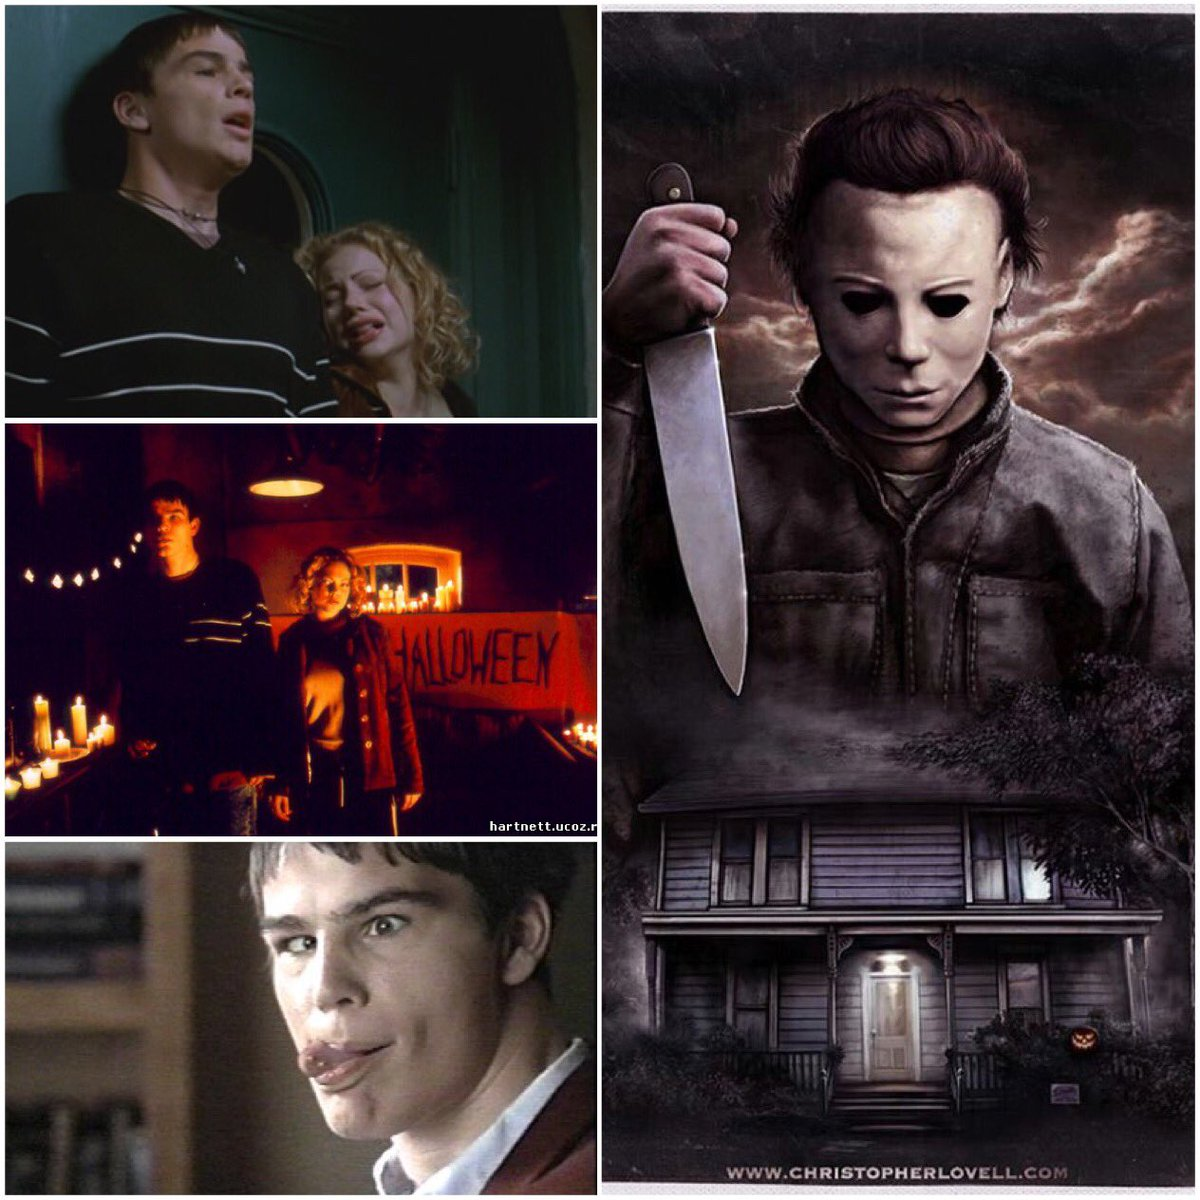 josh hartnett forum on twitter today august 5th in 1998 halloween h20 20 years later came out in theaters joshhartnett halloweenh2o - Josh Hartnett Halloween